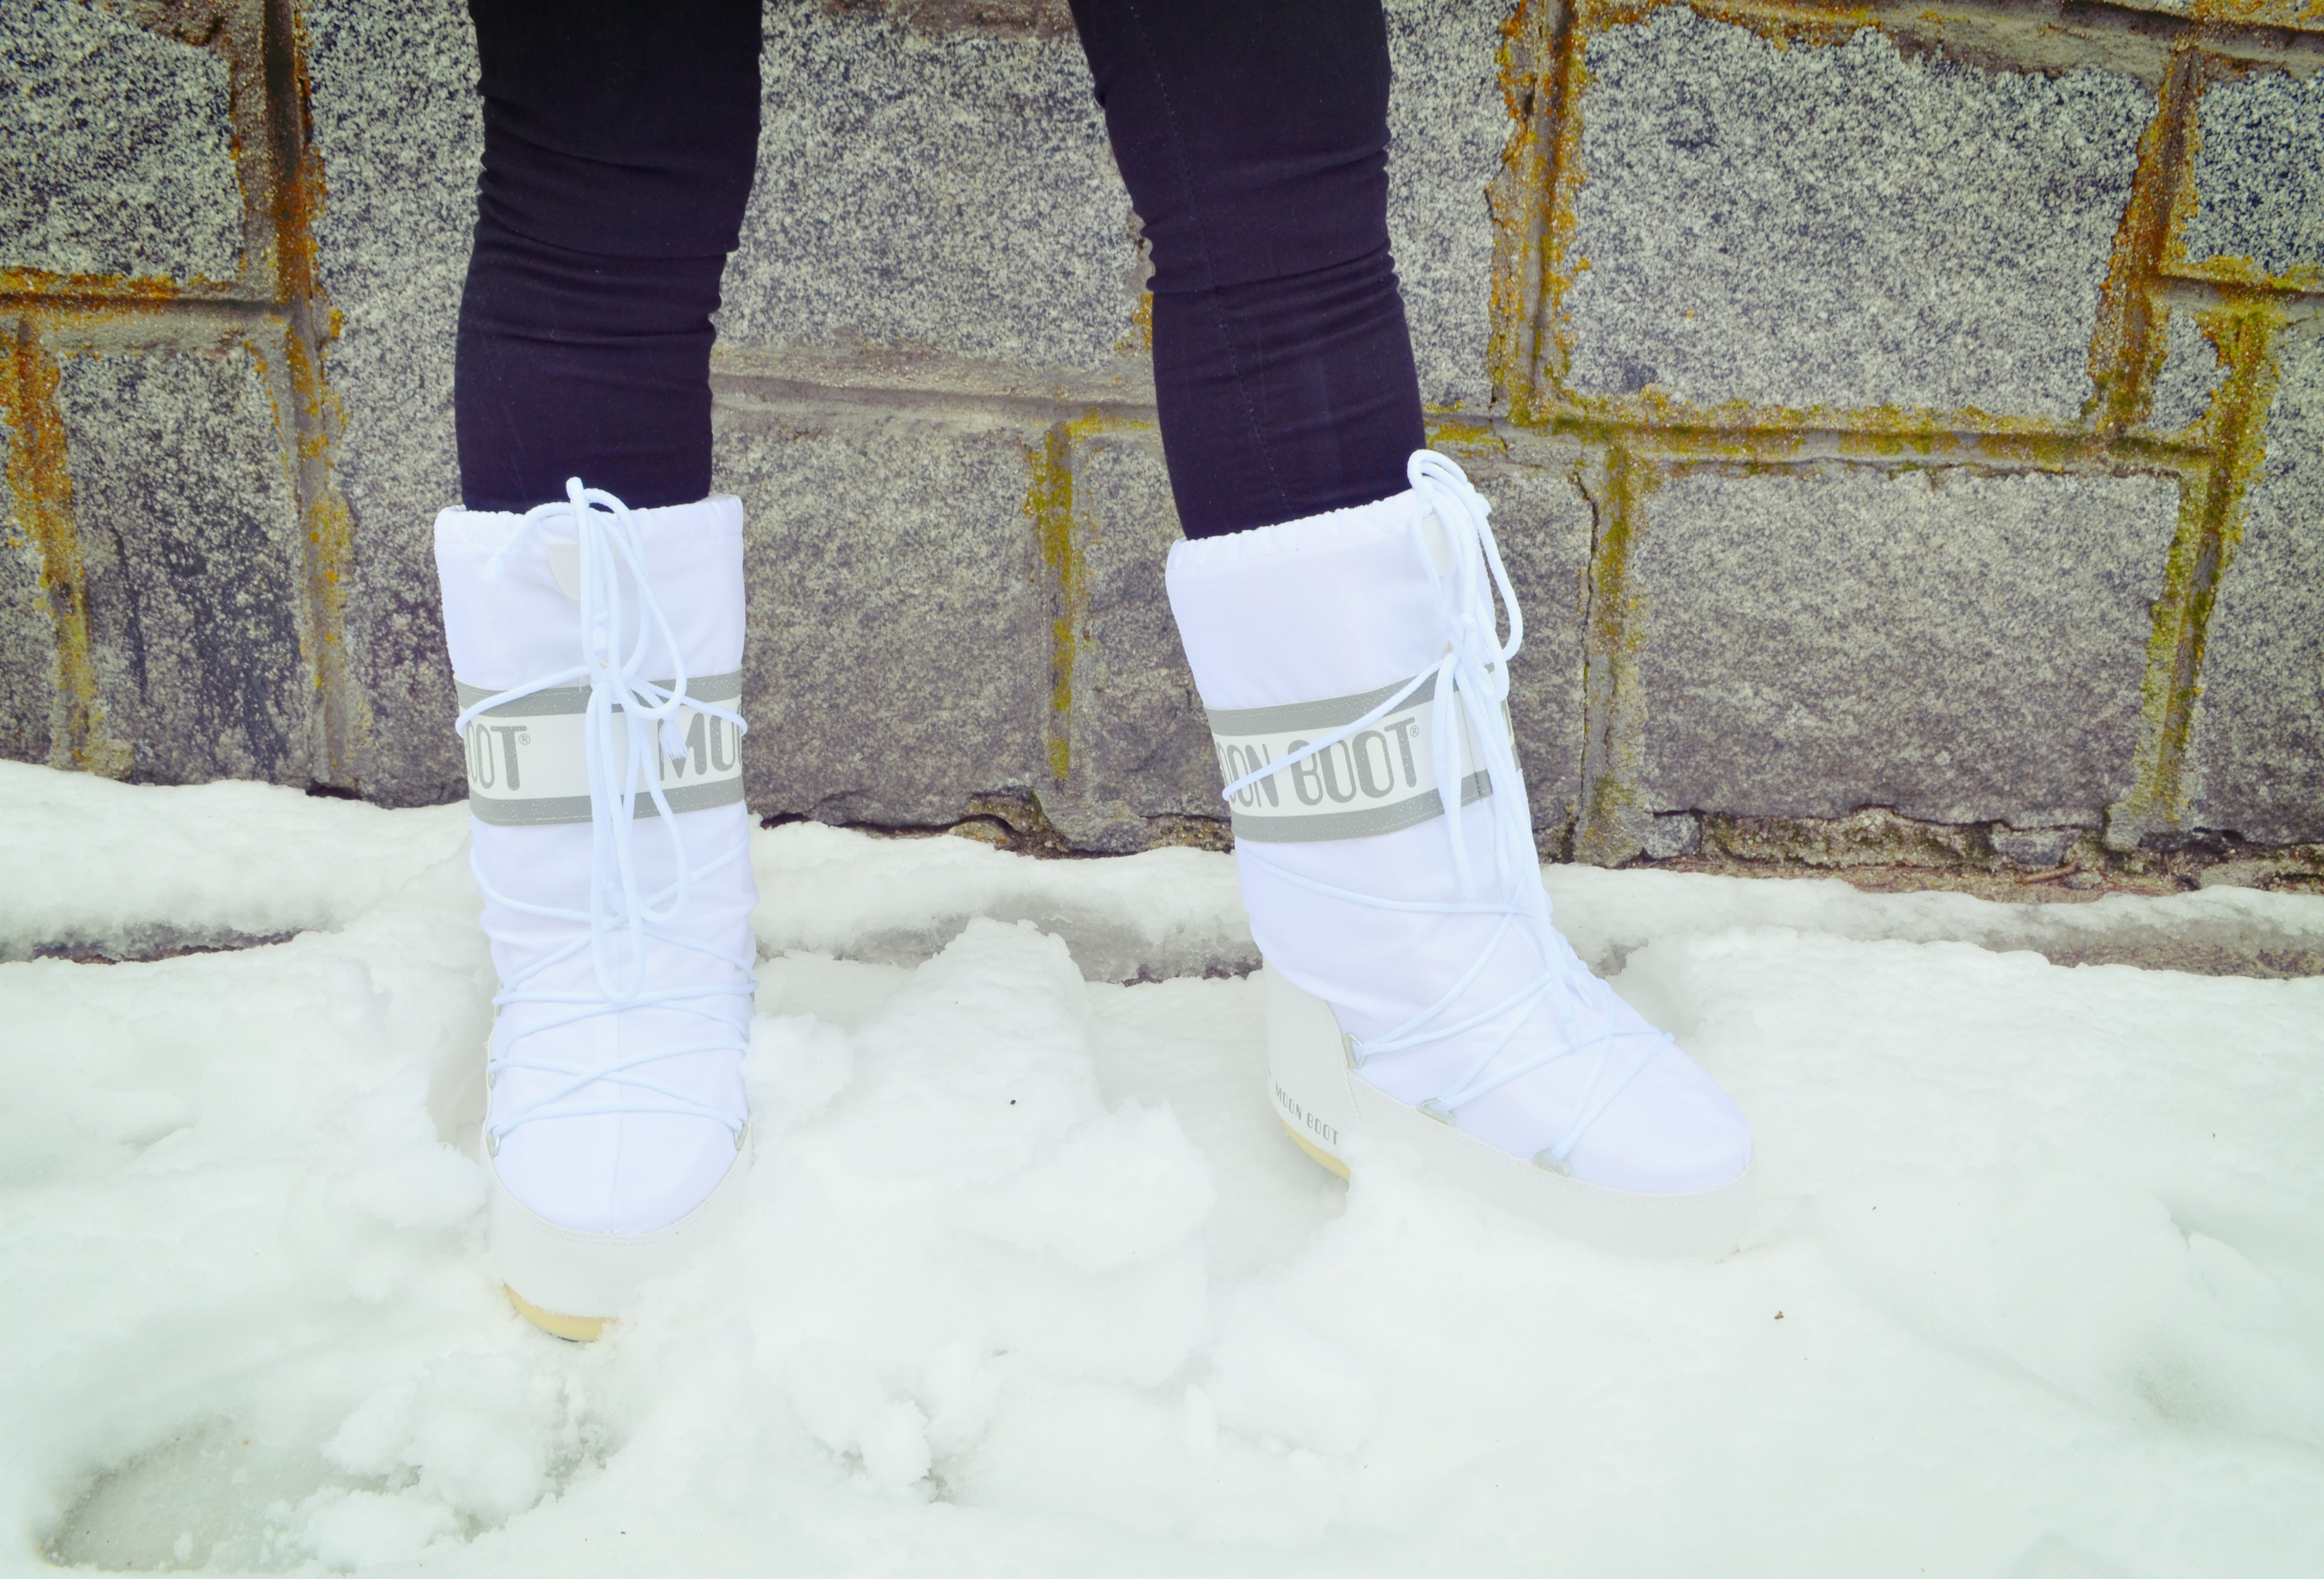 Moon-boot-the-original-blog-de-moda-fashionista-ChicAdicta-snow-booties-ChicAdicta-look-de-nieve-whithe-style-PiensaenChic-Piensa-en-Chic